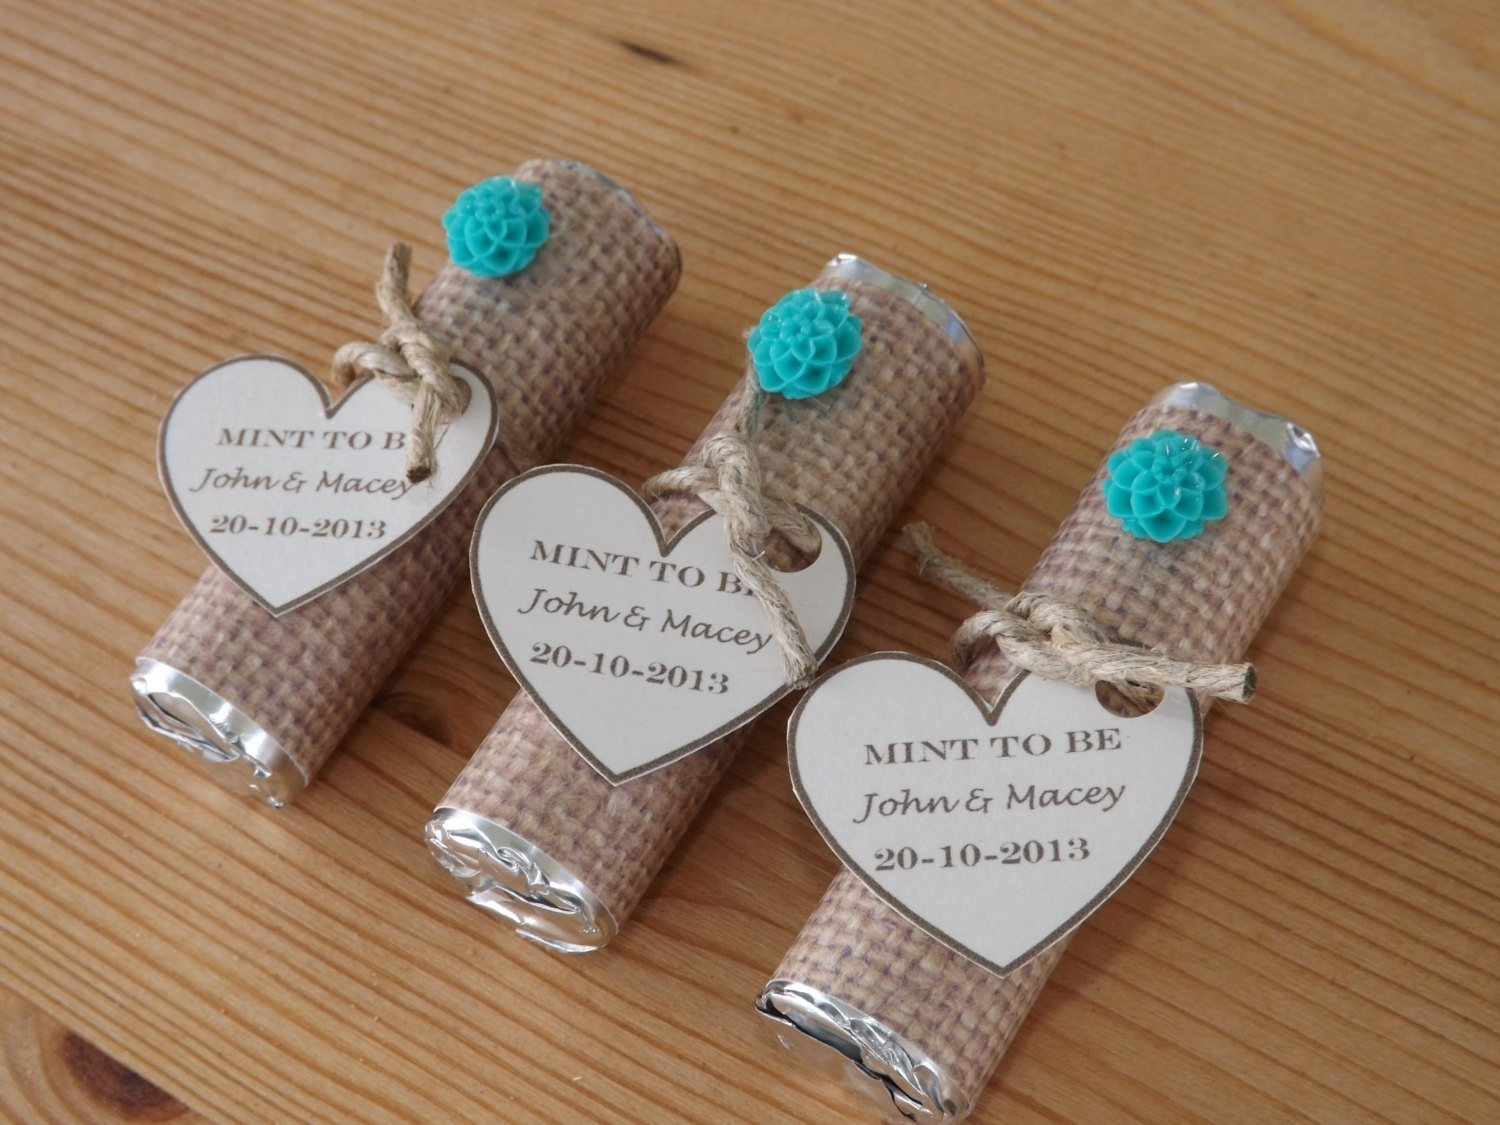 10 Most Popular Ideas For Bridal Shower Favors favors for a bridal shower special bridal shower favors ideas for 2020